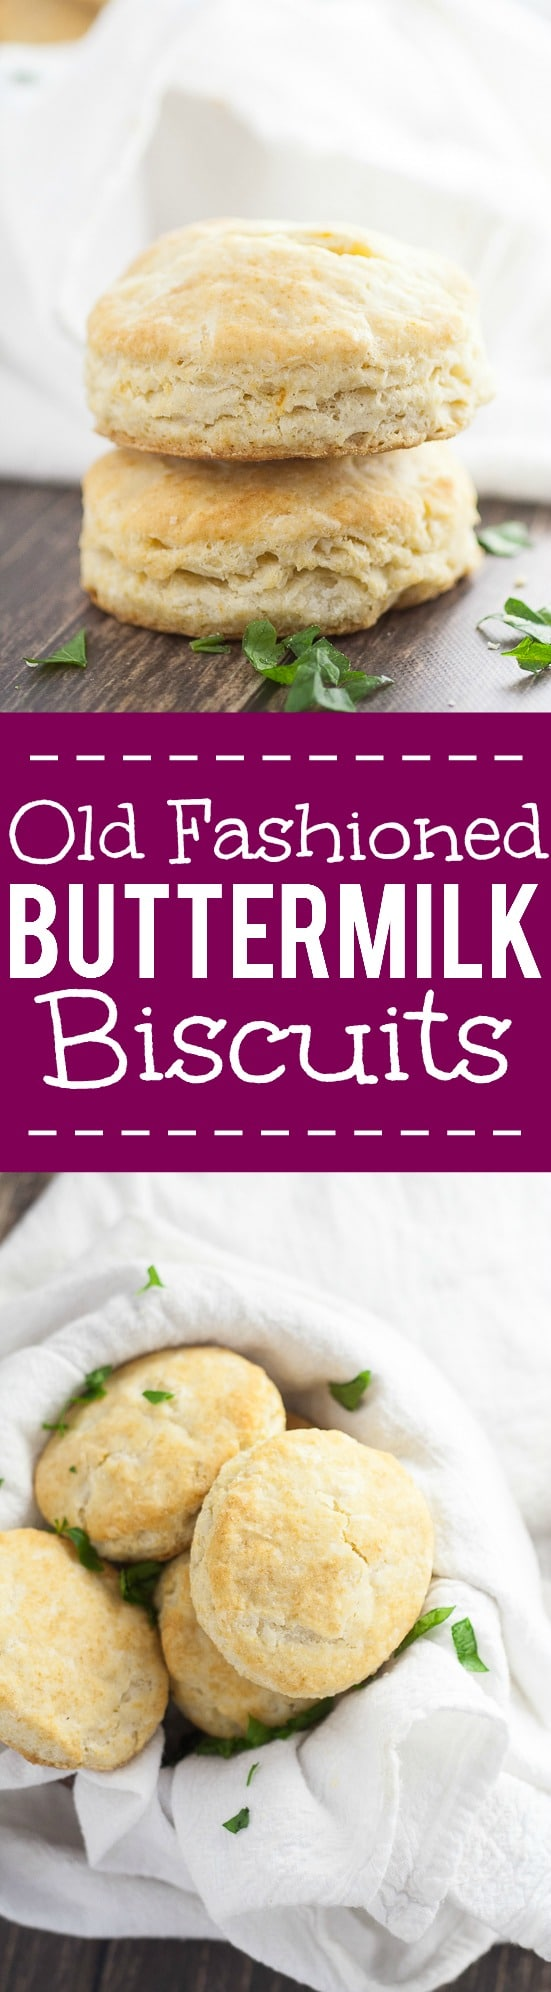 Old Fashioned Buttermilk Biscuits Recipe - Fluffy, flaky Old Fashioned Buttermilk Biscuits recipe is easy to make and is a golden, delicious crowd pleaser! They're so simple and will never disappoint! These flaky, buttery biscuits are perfect for a Thanksgiving side dish or for biscuits and gravy.